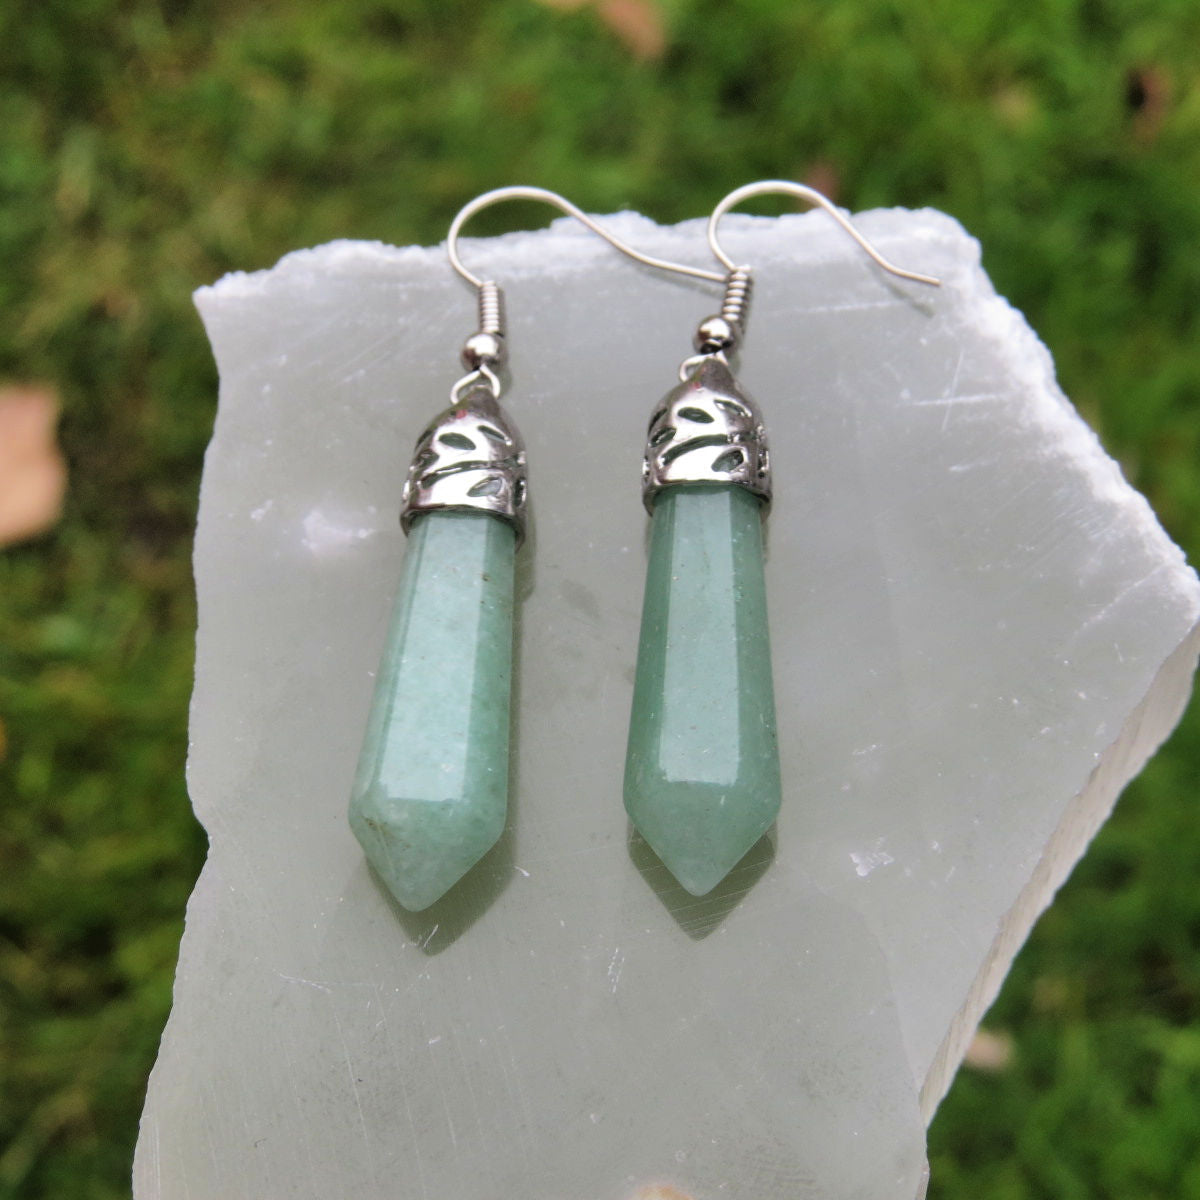 Green Aventurine Earrings in Silver - Large Crystal Point Stone Earrings